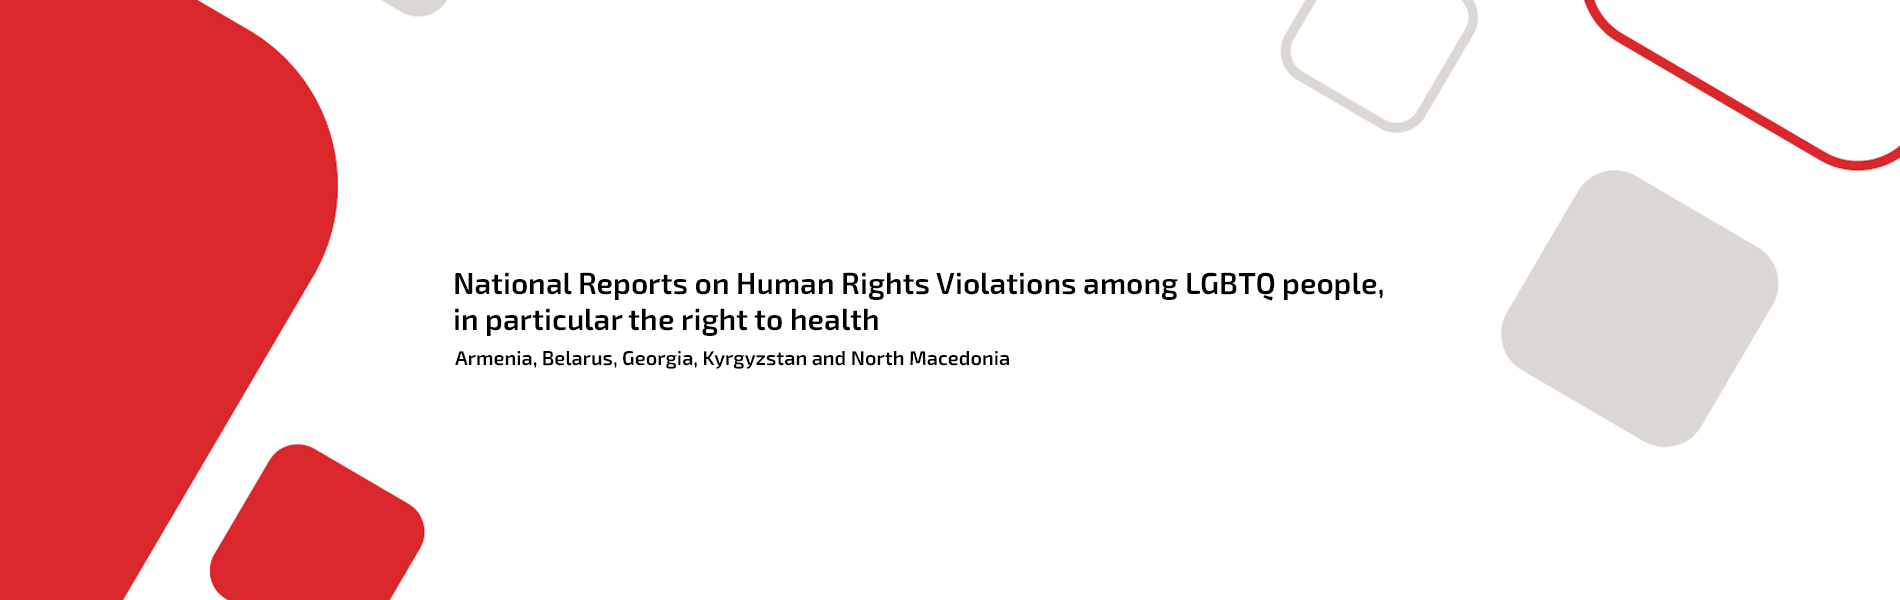 The reports describe the human rights situations of LGBTQ people in these countries, in particular the right to health, and also reflect existing situations related to discrimination on the basis of sexual orientation and/or gender identity.